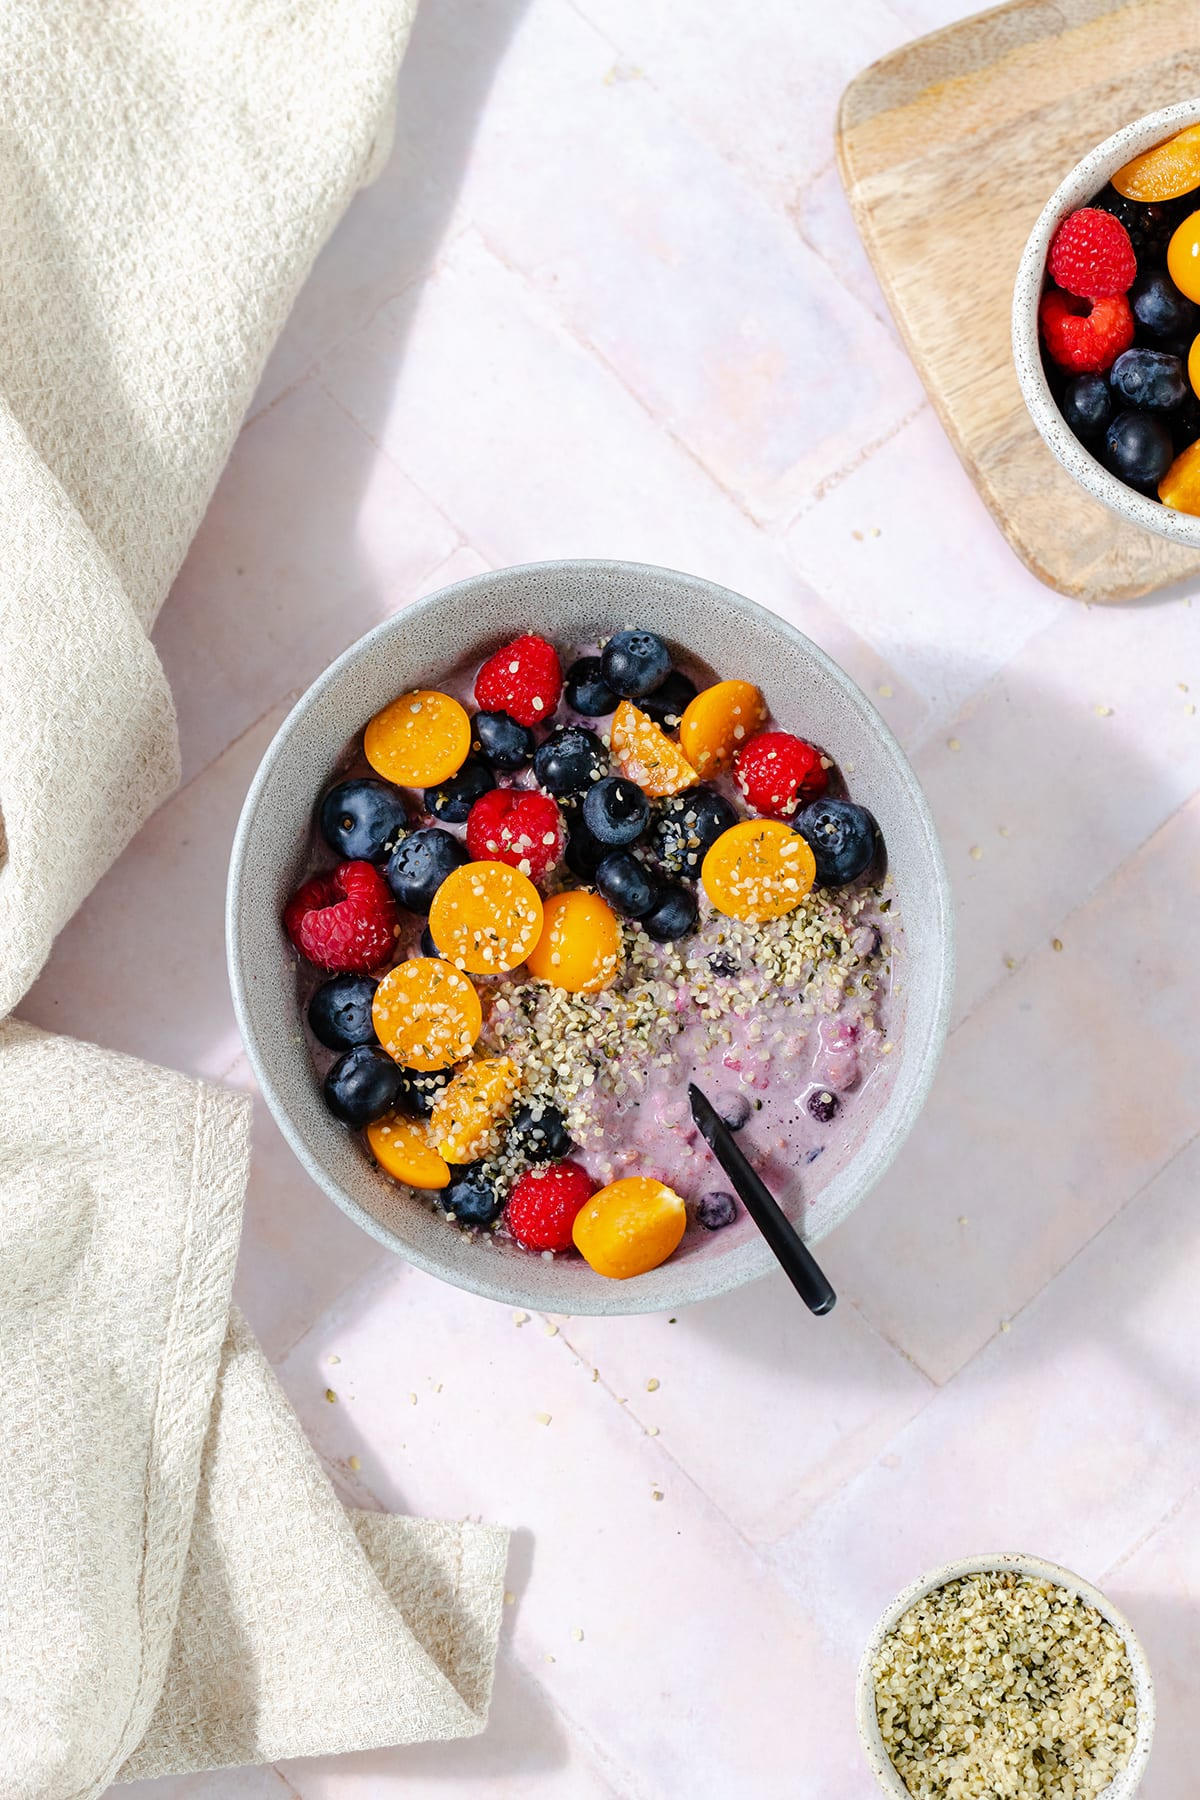 Overhead shot of blueberry overnight oats in a grey bowl topped with blueberries, raspberries, golden berries, and hemp seeds. Pink tile background.